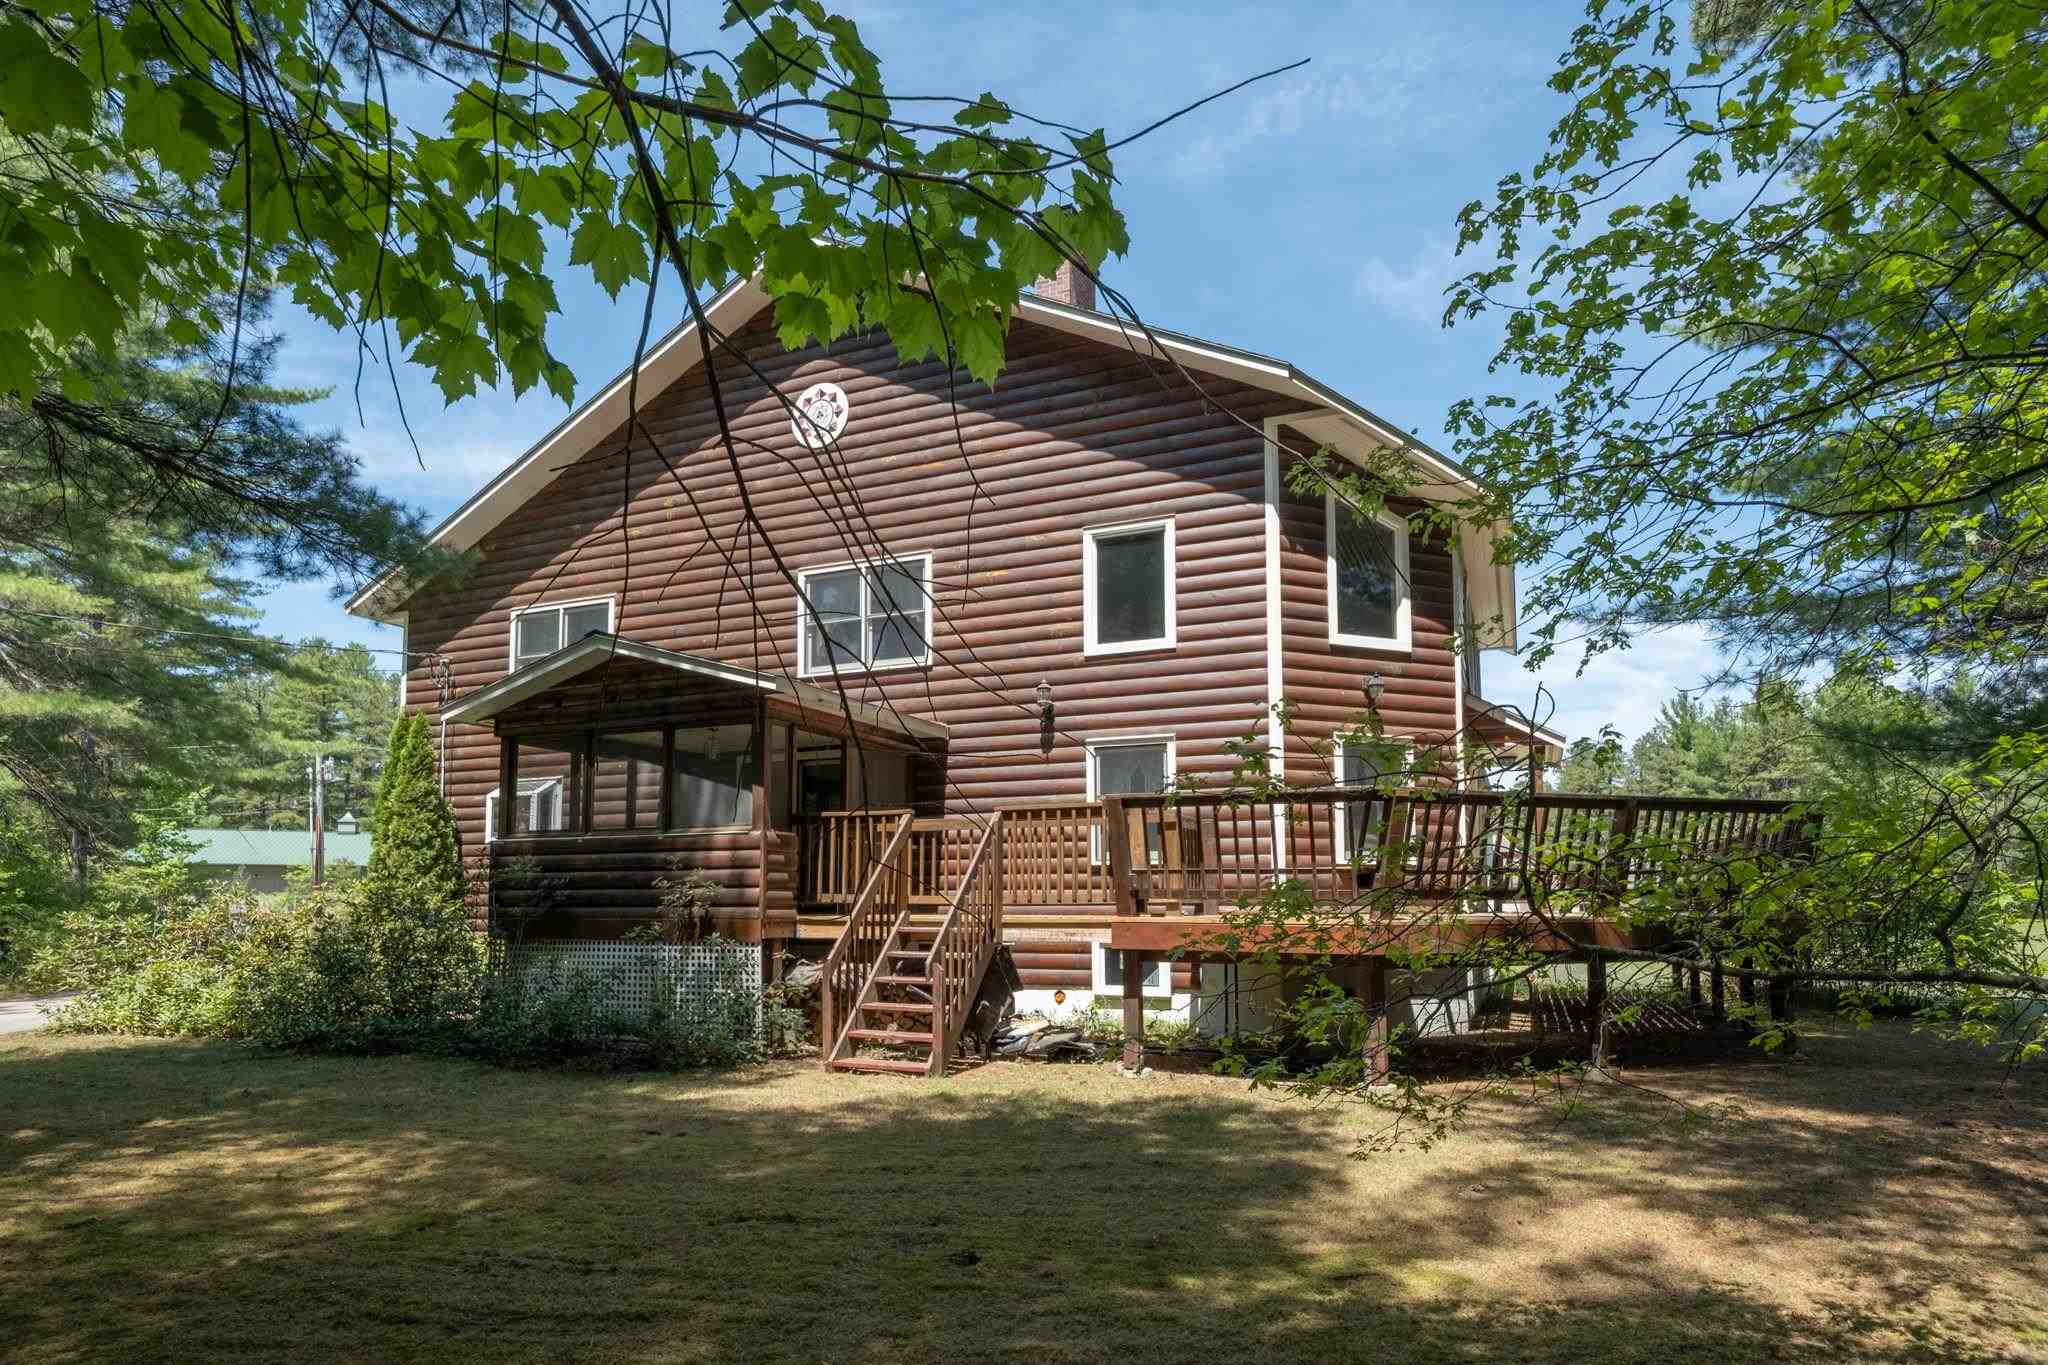 VILLAGE OF WEST OSSIPEE IN TOWN OF OSSIPEE NHHomes for sale